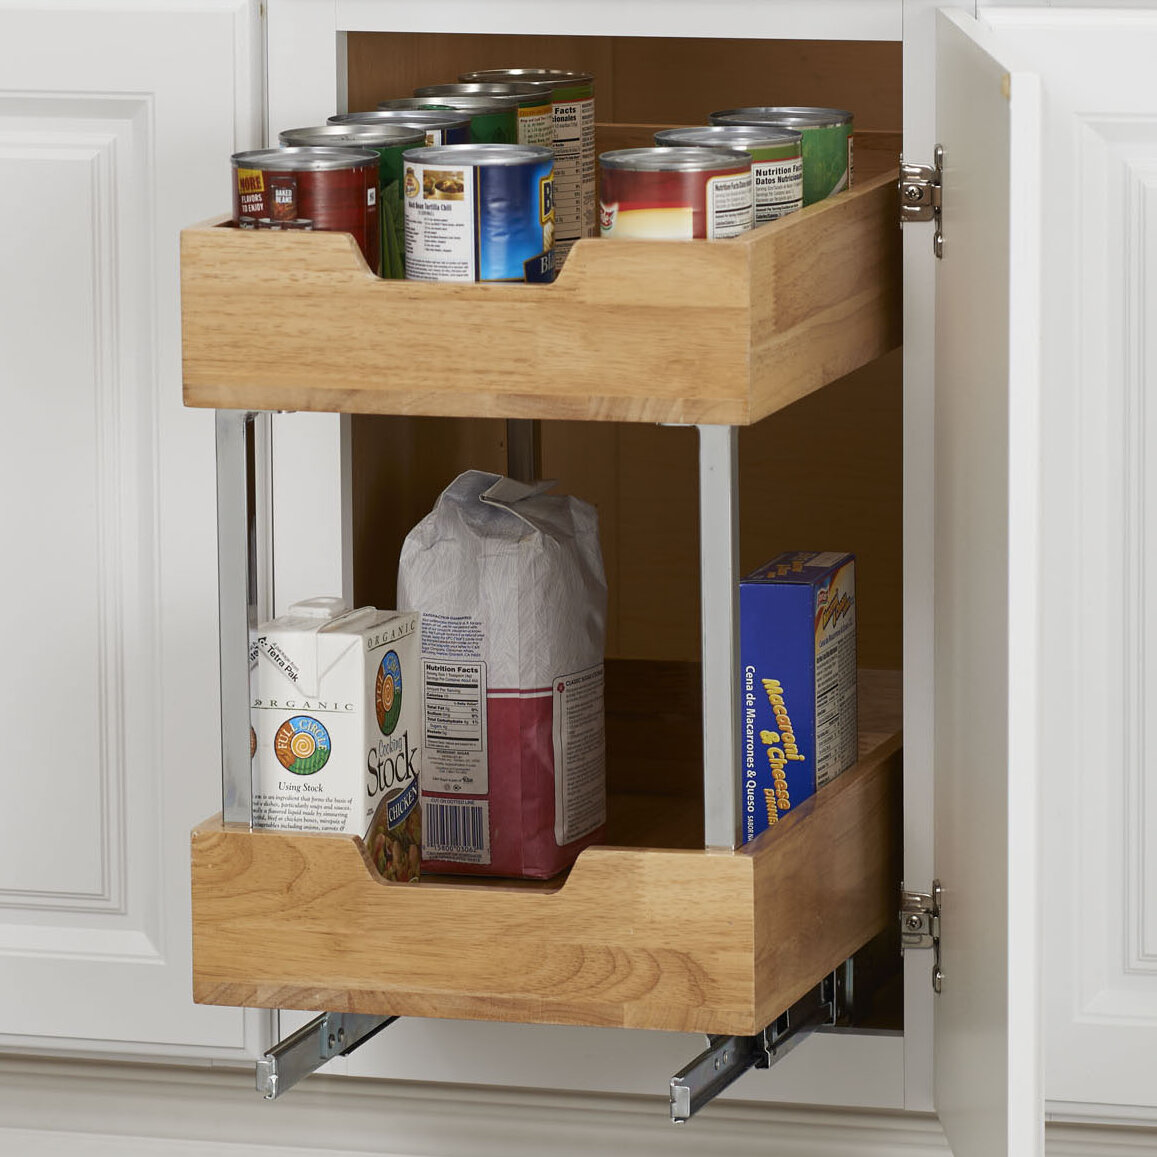 pdx right corner rev handed curve blind kitchen tabletop wayfair organizer shelf cookware a two tier